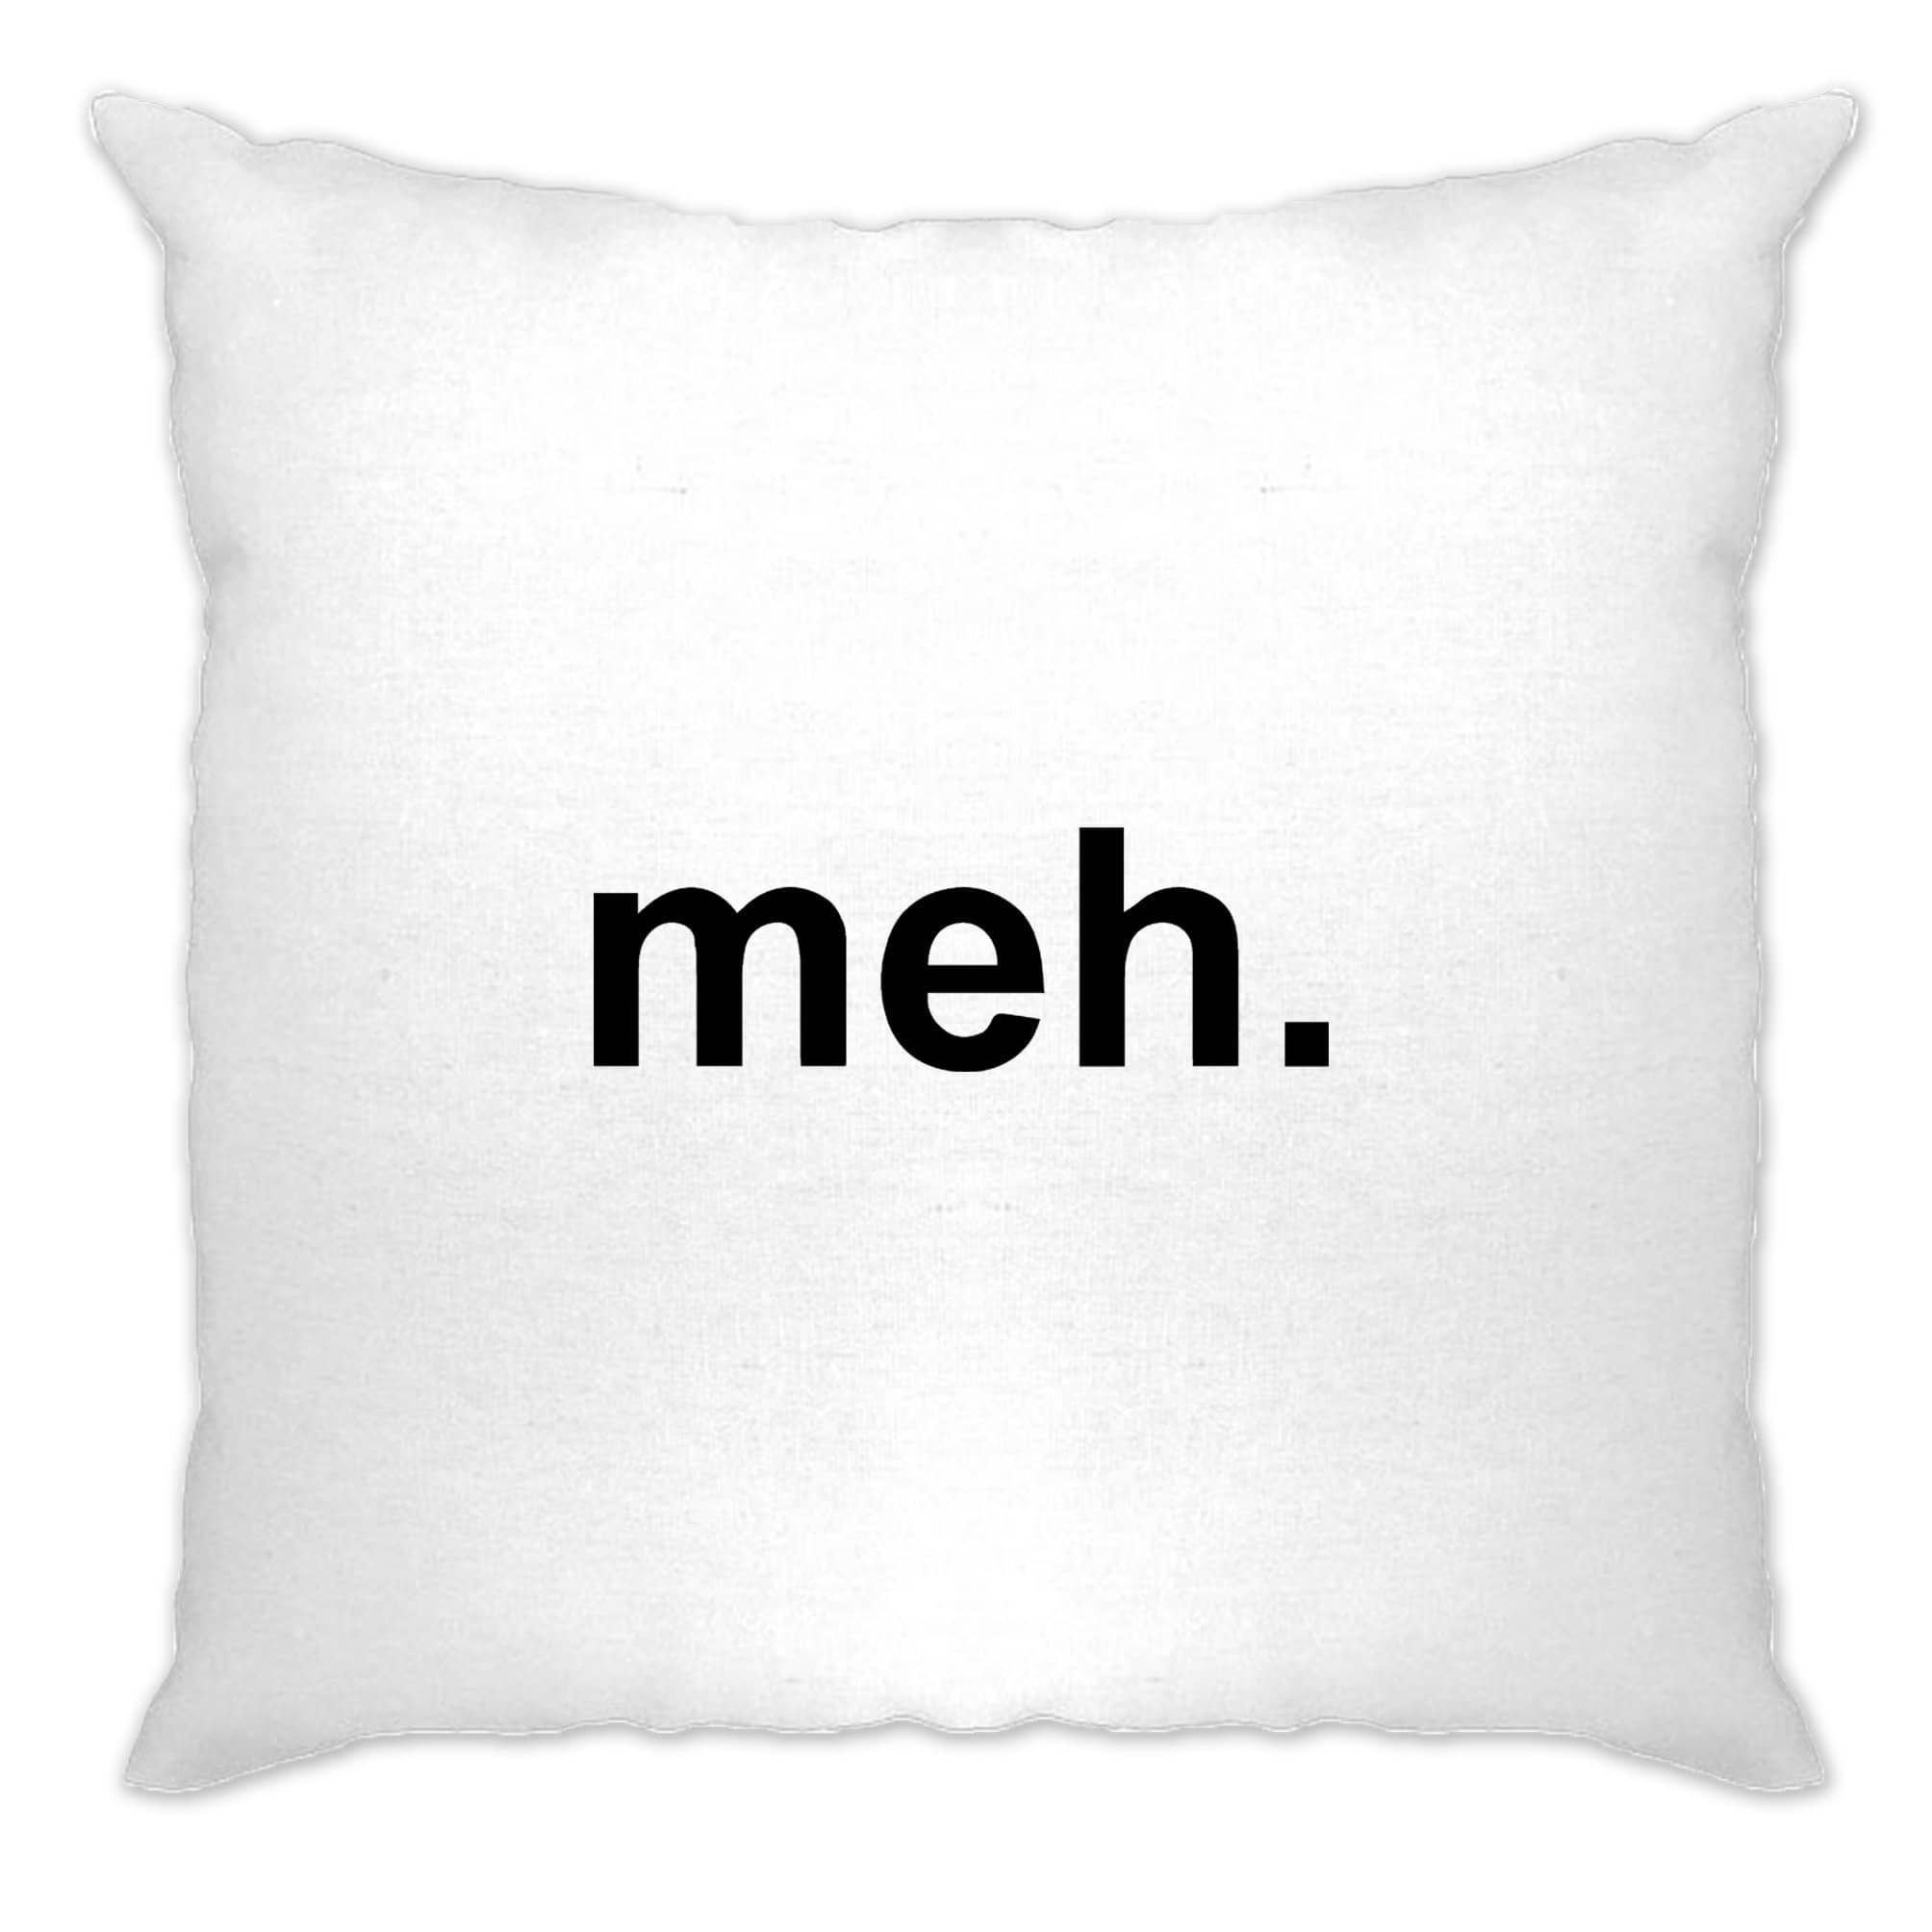 Novelty Cushion Cover With Just The Word Meh.